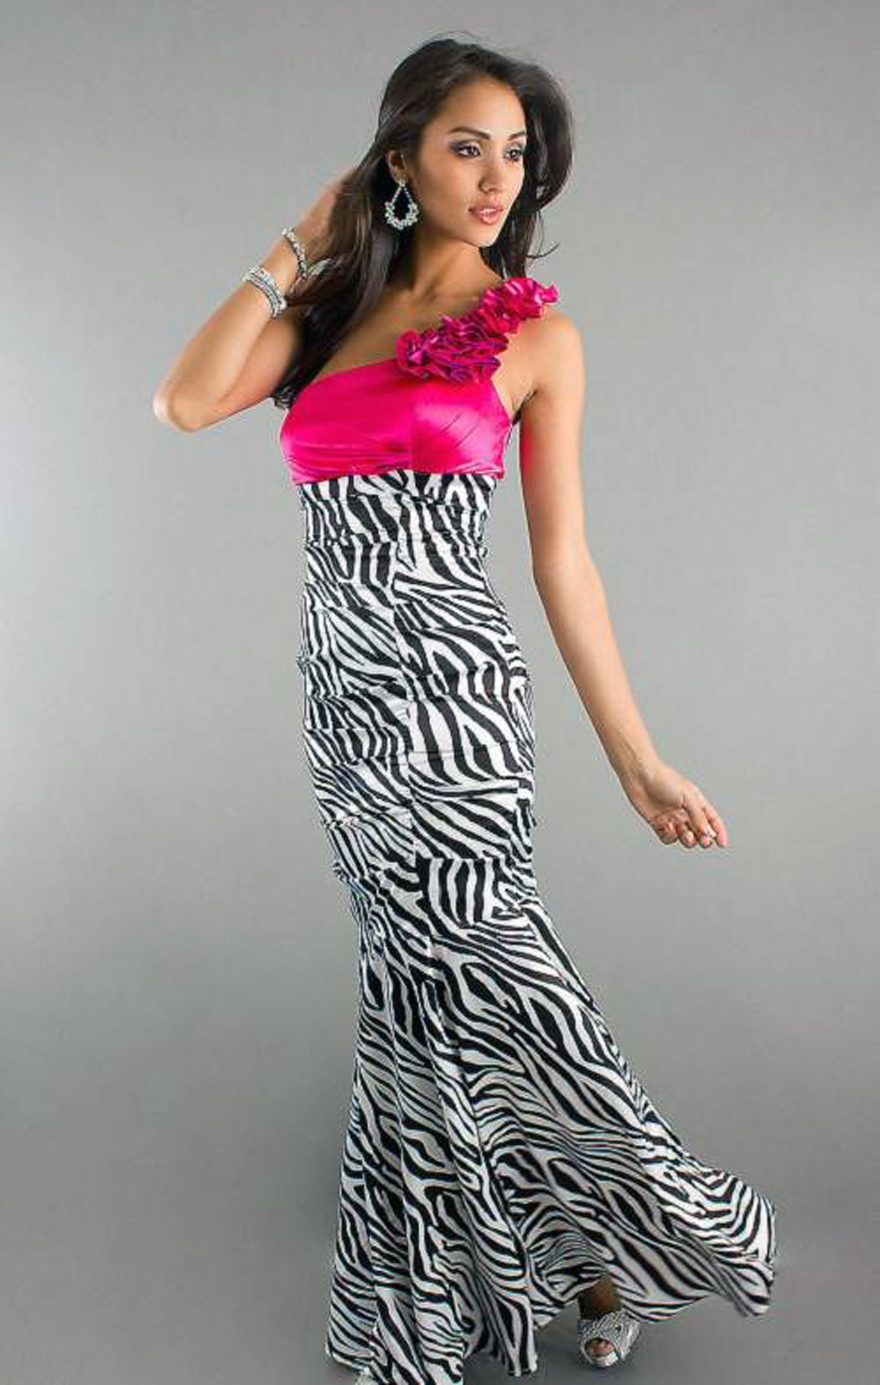 Pretty Zebra Print Prom Dresses Ideas Inofashionstyle